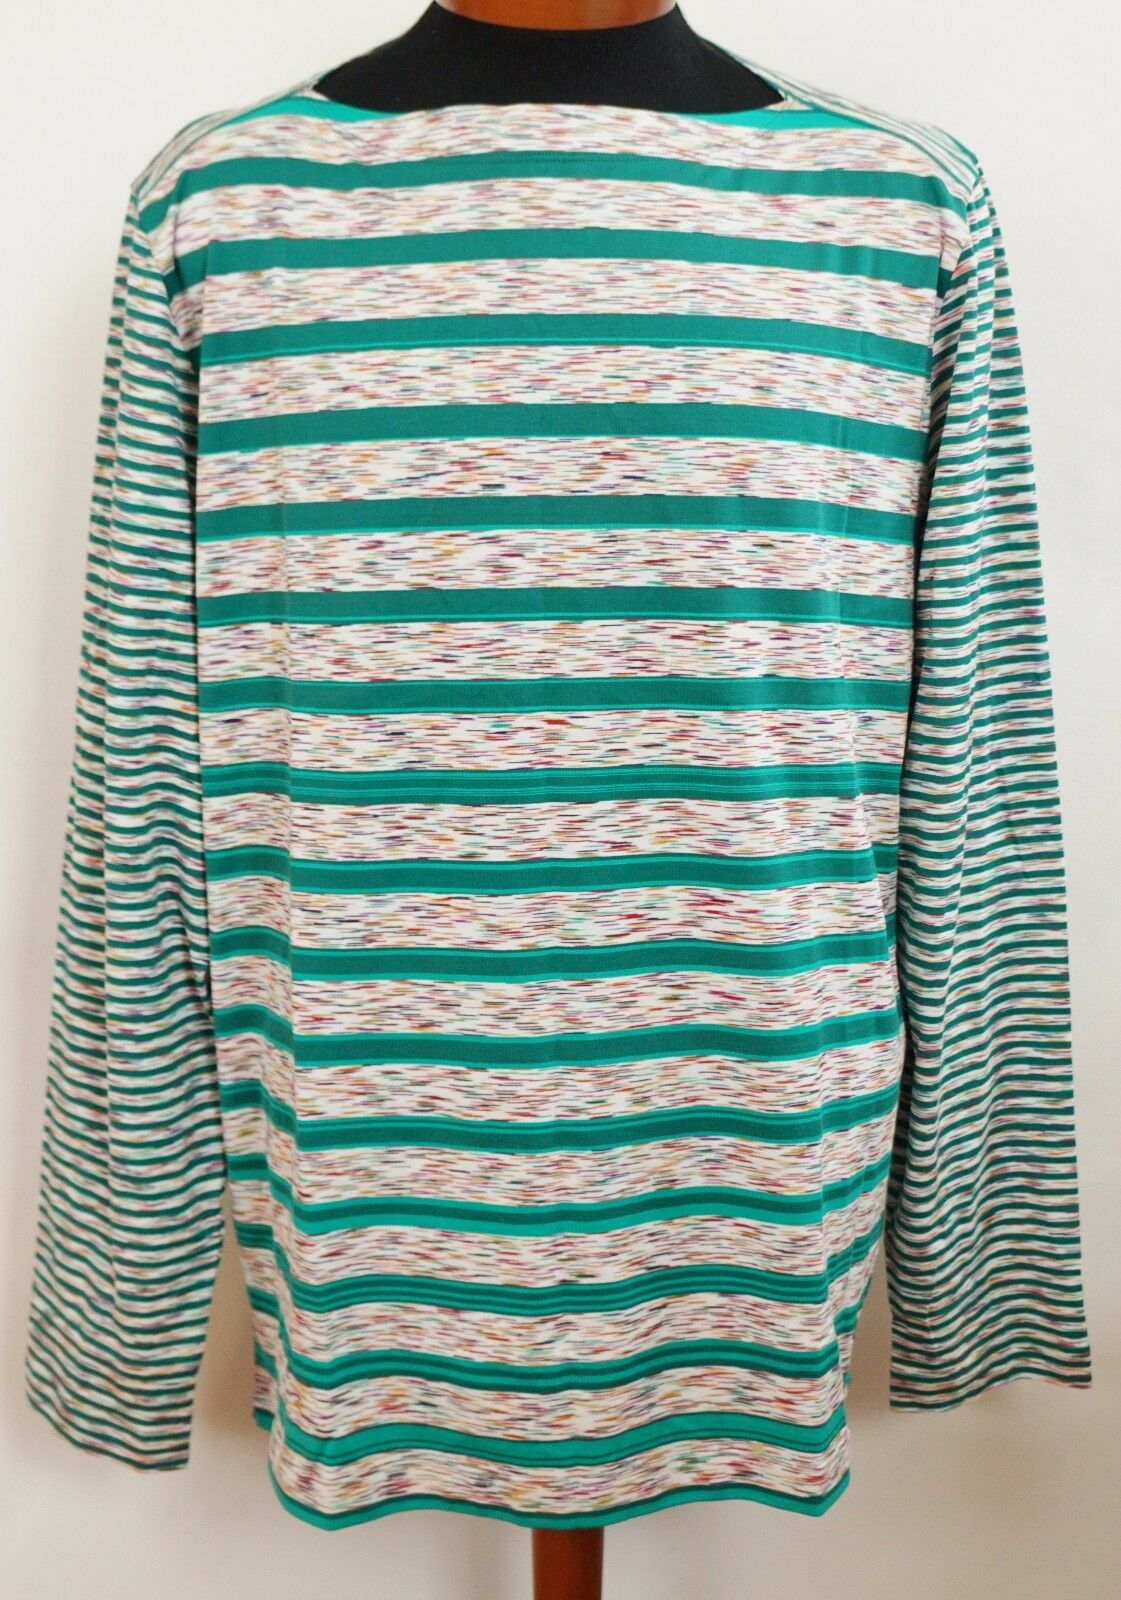 NWT Authentic MISSONI Multi-Farbeed 100% Cotton Long-Sleeve T-Shirt Top L